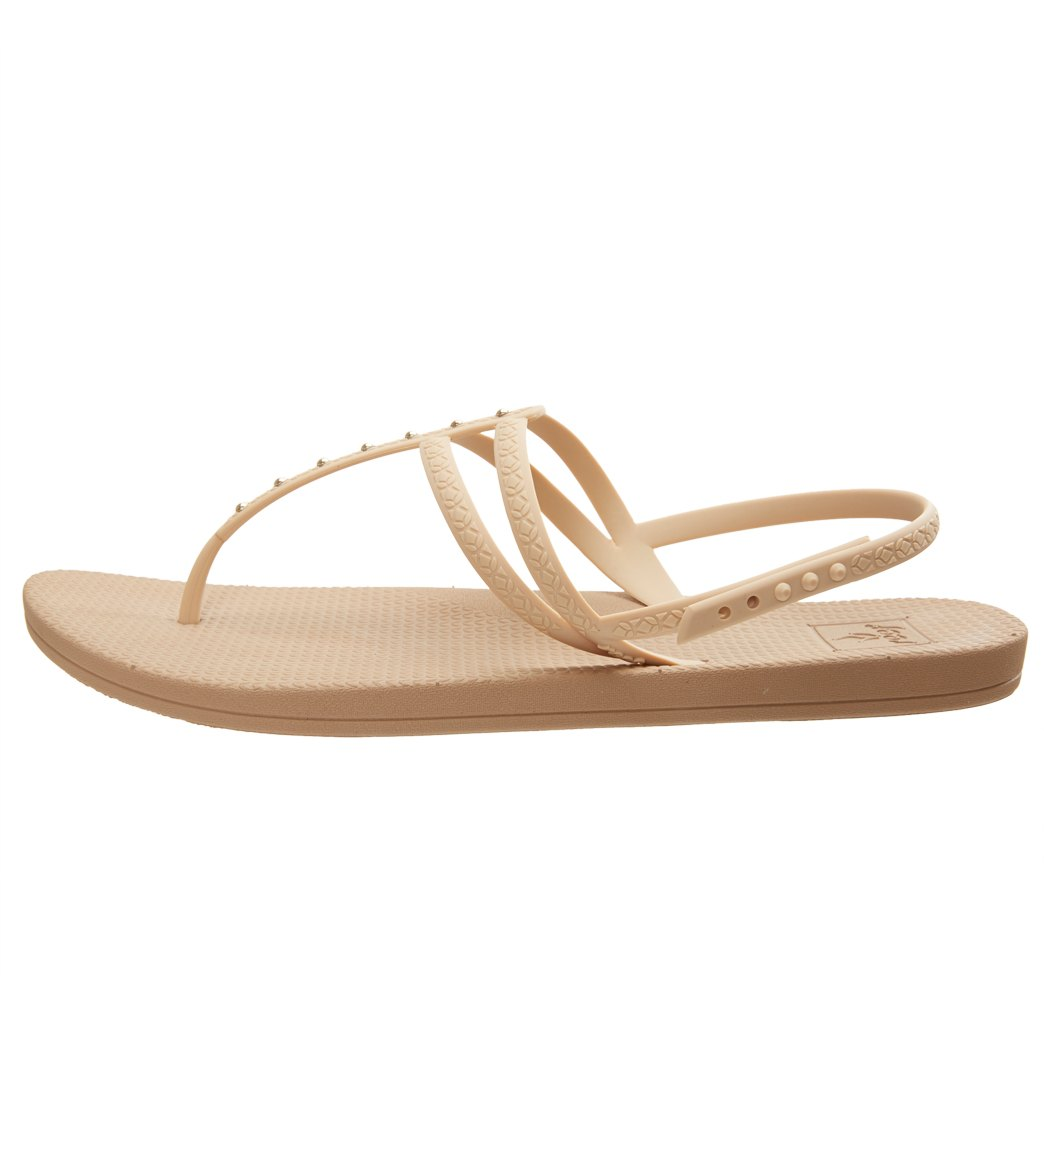 62c1d910157c Reef Women s Escape Lux T Stud Sandal at SwimOutlet.com